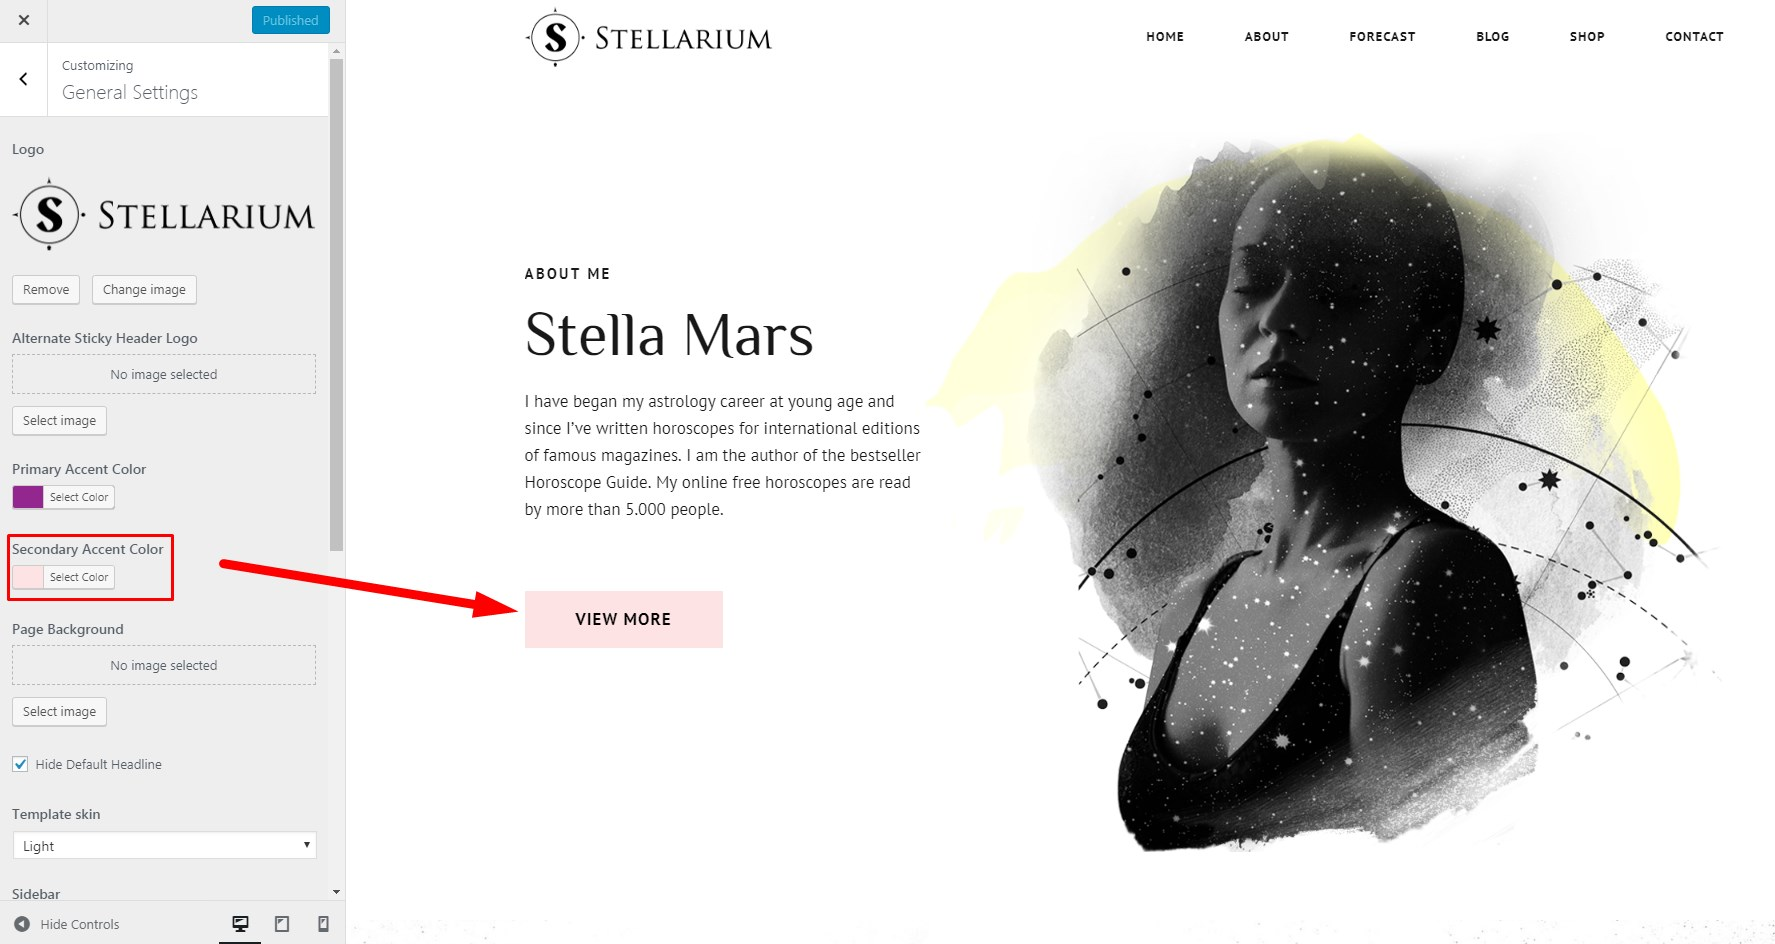 http://documentation.bold-themes.com/stellarium/wp-content/uploads/sites/34/2018/06/stellarium-customize-03.jpg